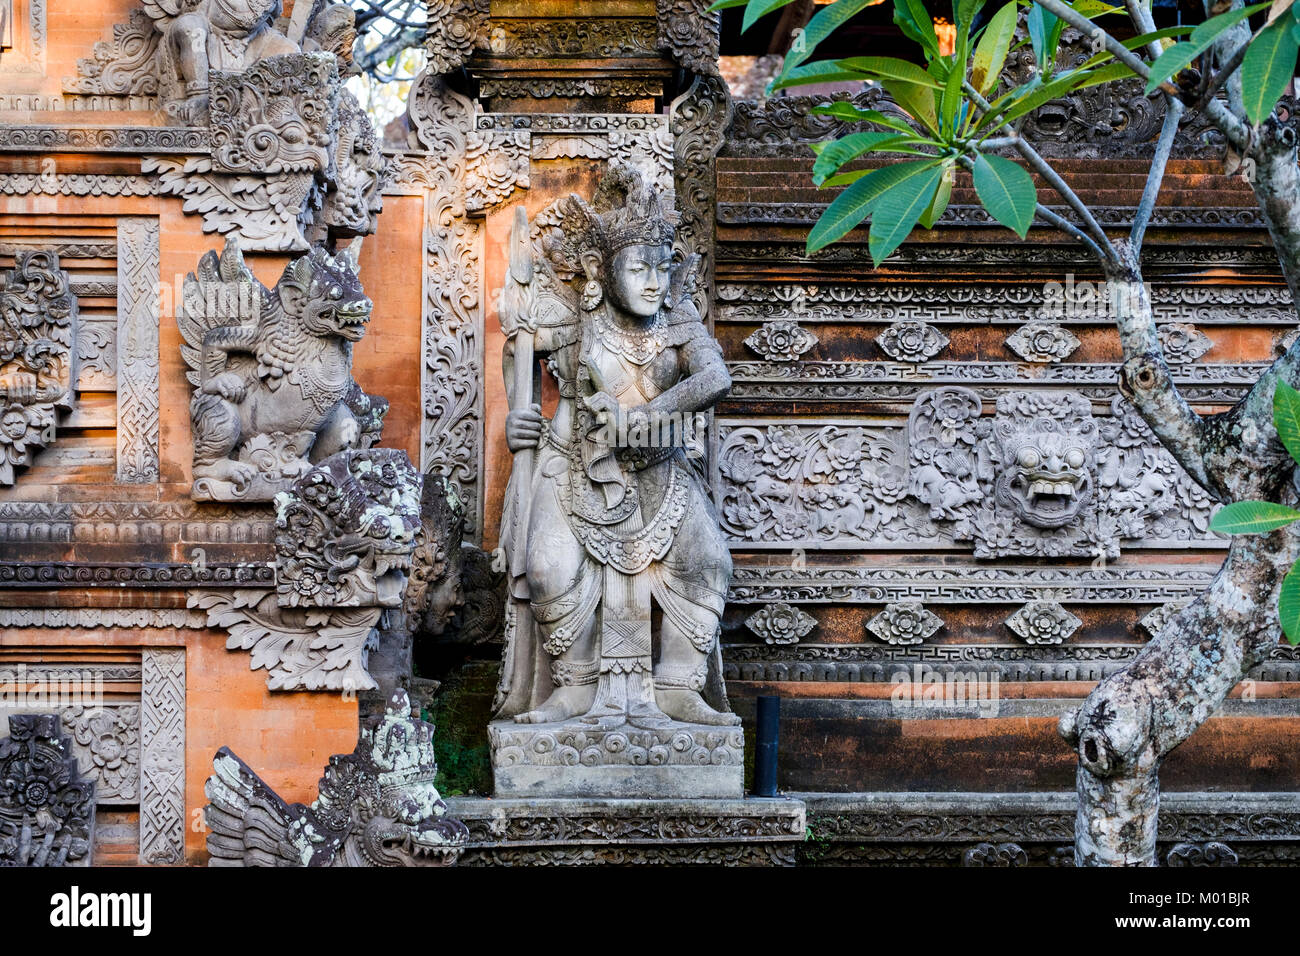 Stone carvings and statue on the outer wall of a Balinese compound in Ubud, Bali, Indonesia. - Stock Image